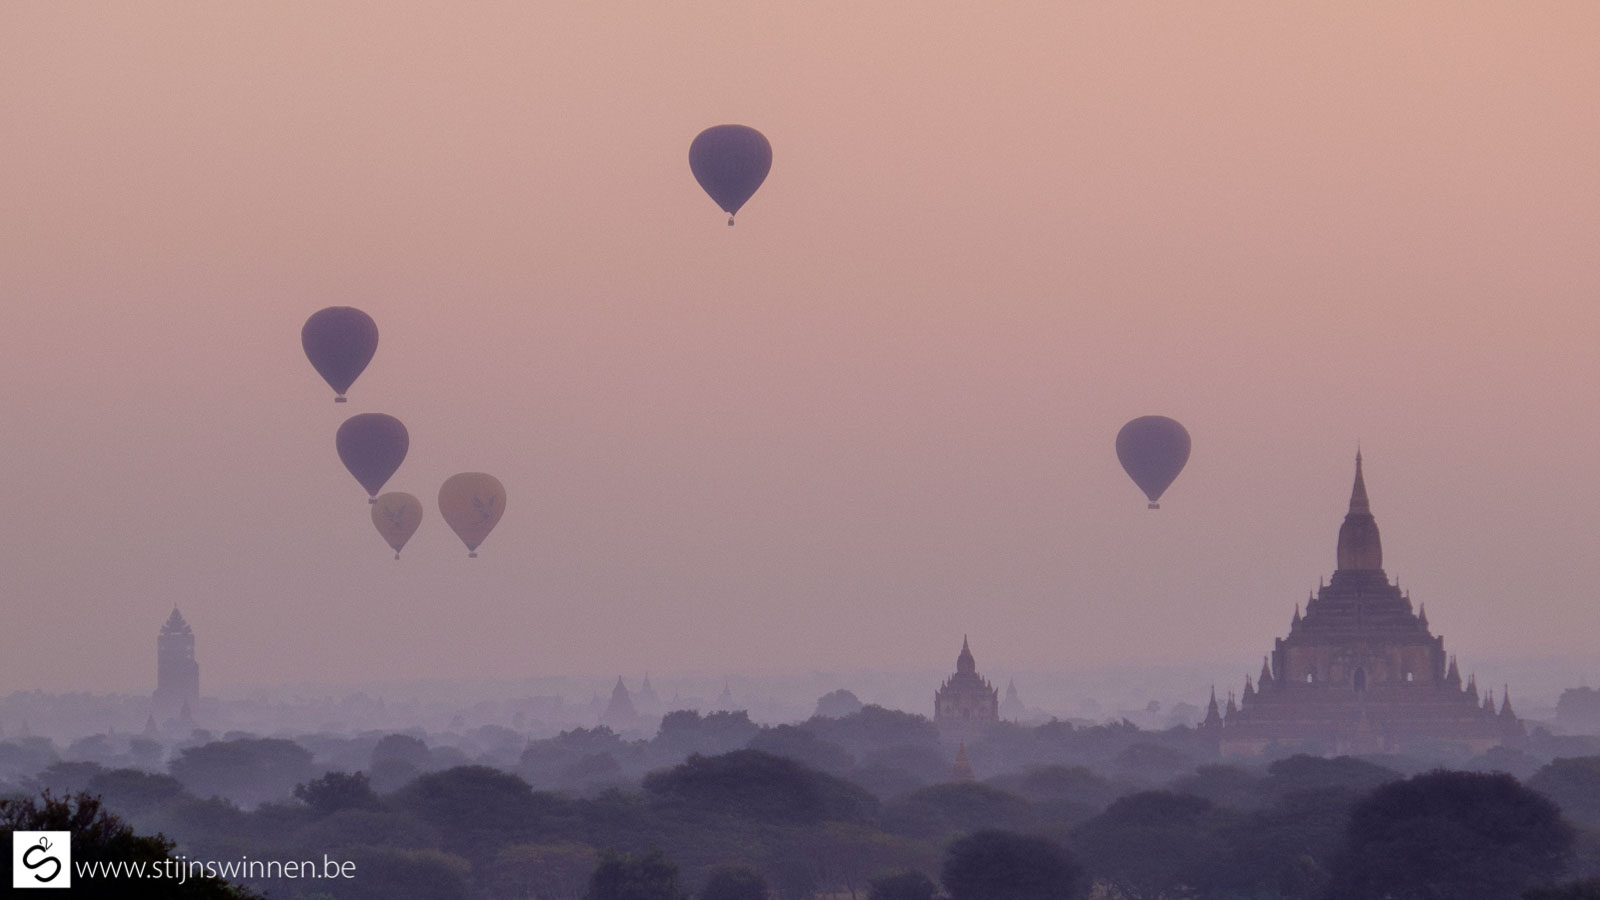 Pagoda in Bagan at sunrise with many balloons